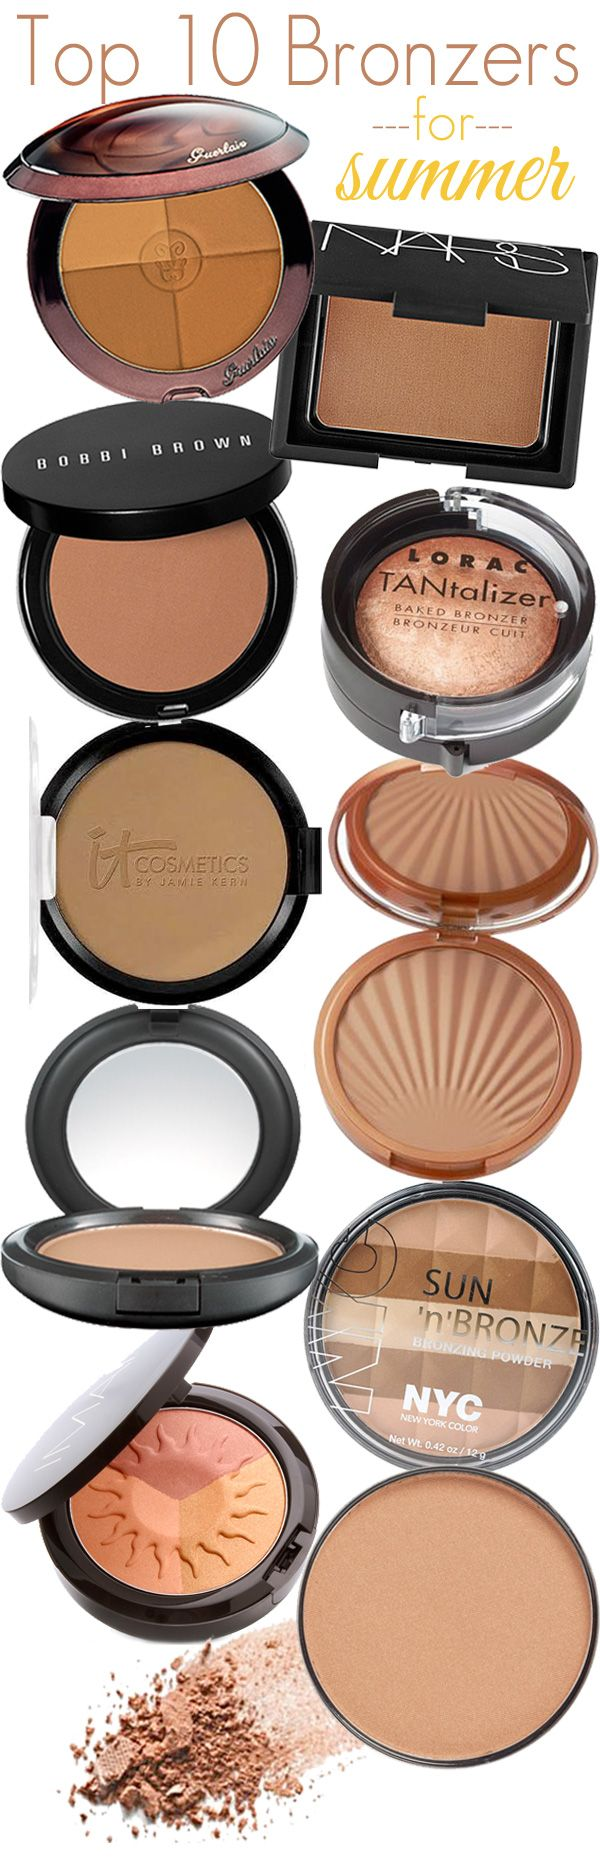 Top 10 Bronzers. - Home - Beautiful Makeup Search: Beauty Blog, Makeup  Skin Care Reviews, Beauty Tips